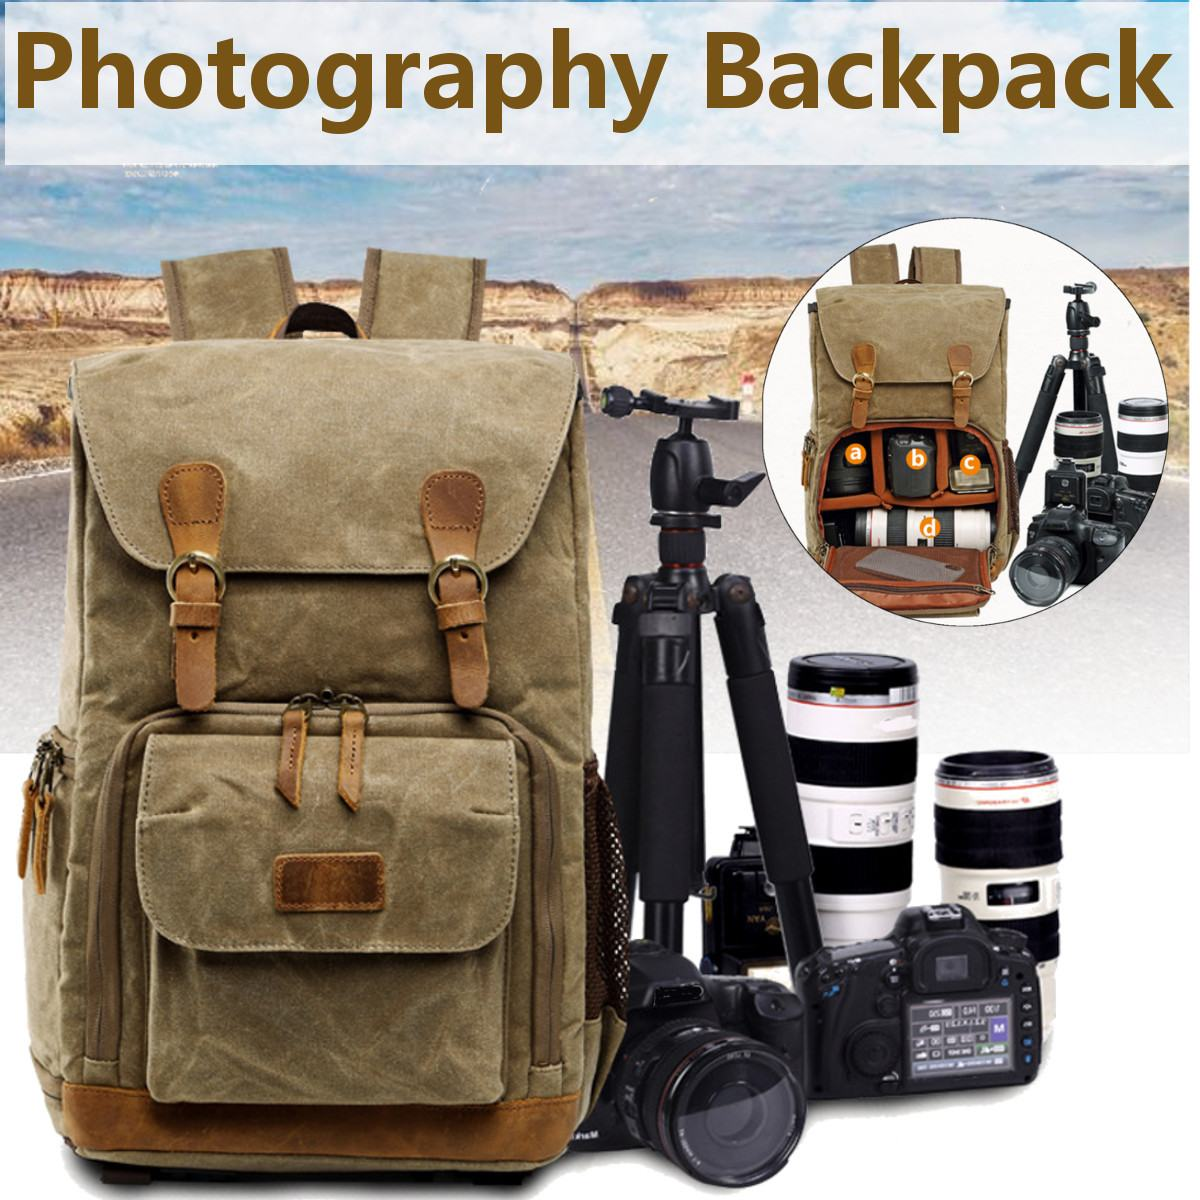 Consumer Electronics Batik Canvas Waterproof Trendy Vintage Leisure Photography Bag Outdoor Wear-resistant Large Backpack Men For Canon Nikon Sony In Many Styles Digital Gear Bags